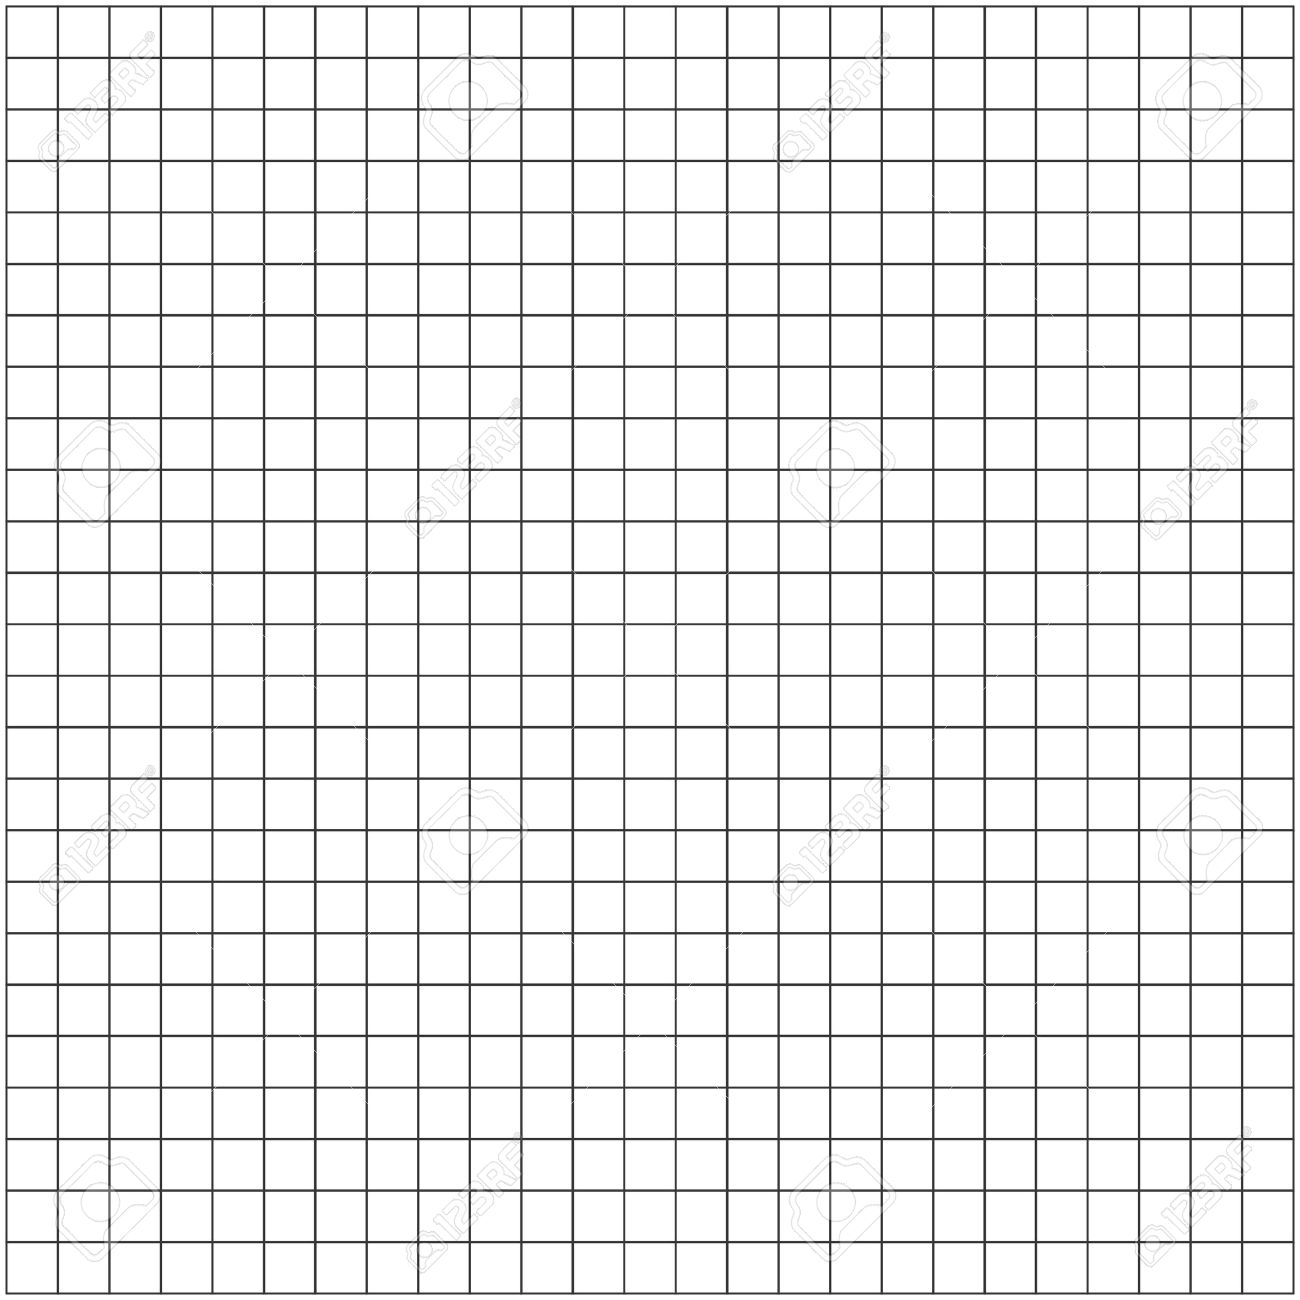 worksheet Graph Paper Images graph paper illustrator background eps10 royalty free cliparts stock vector 18981869